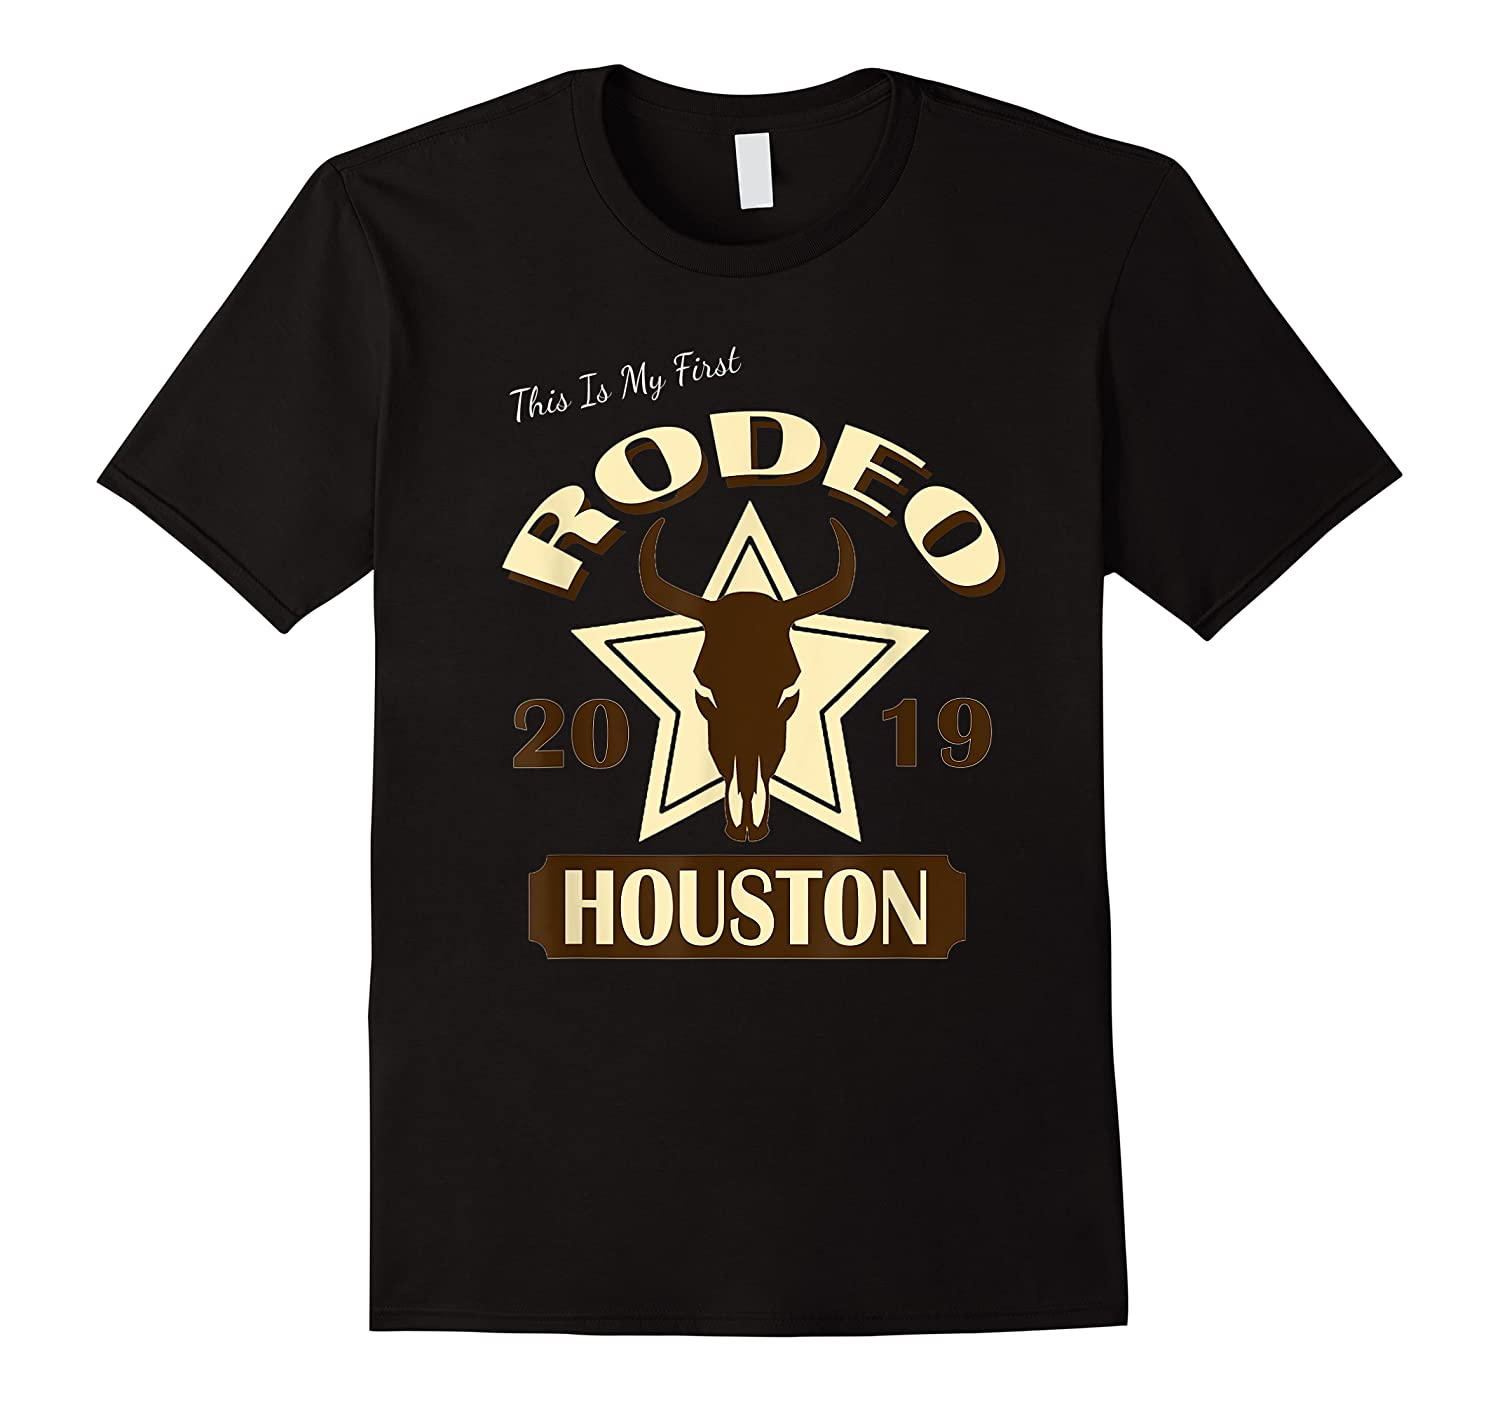 Rodeo 2019 T Shirt This Is My First Houston Rodeo